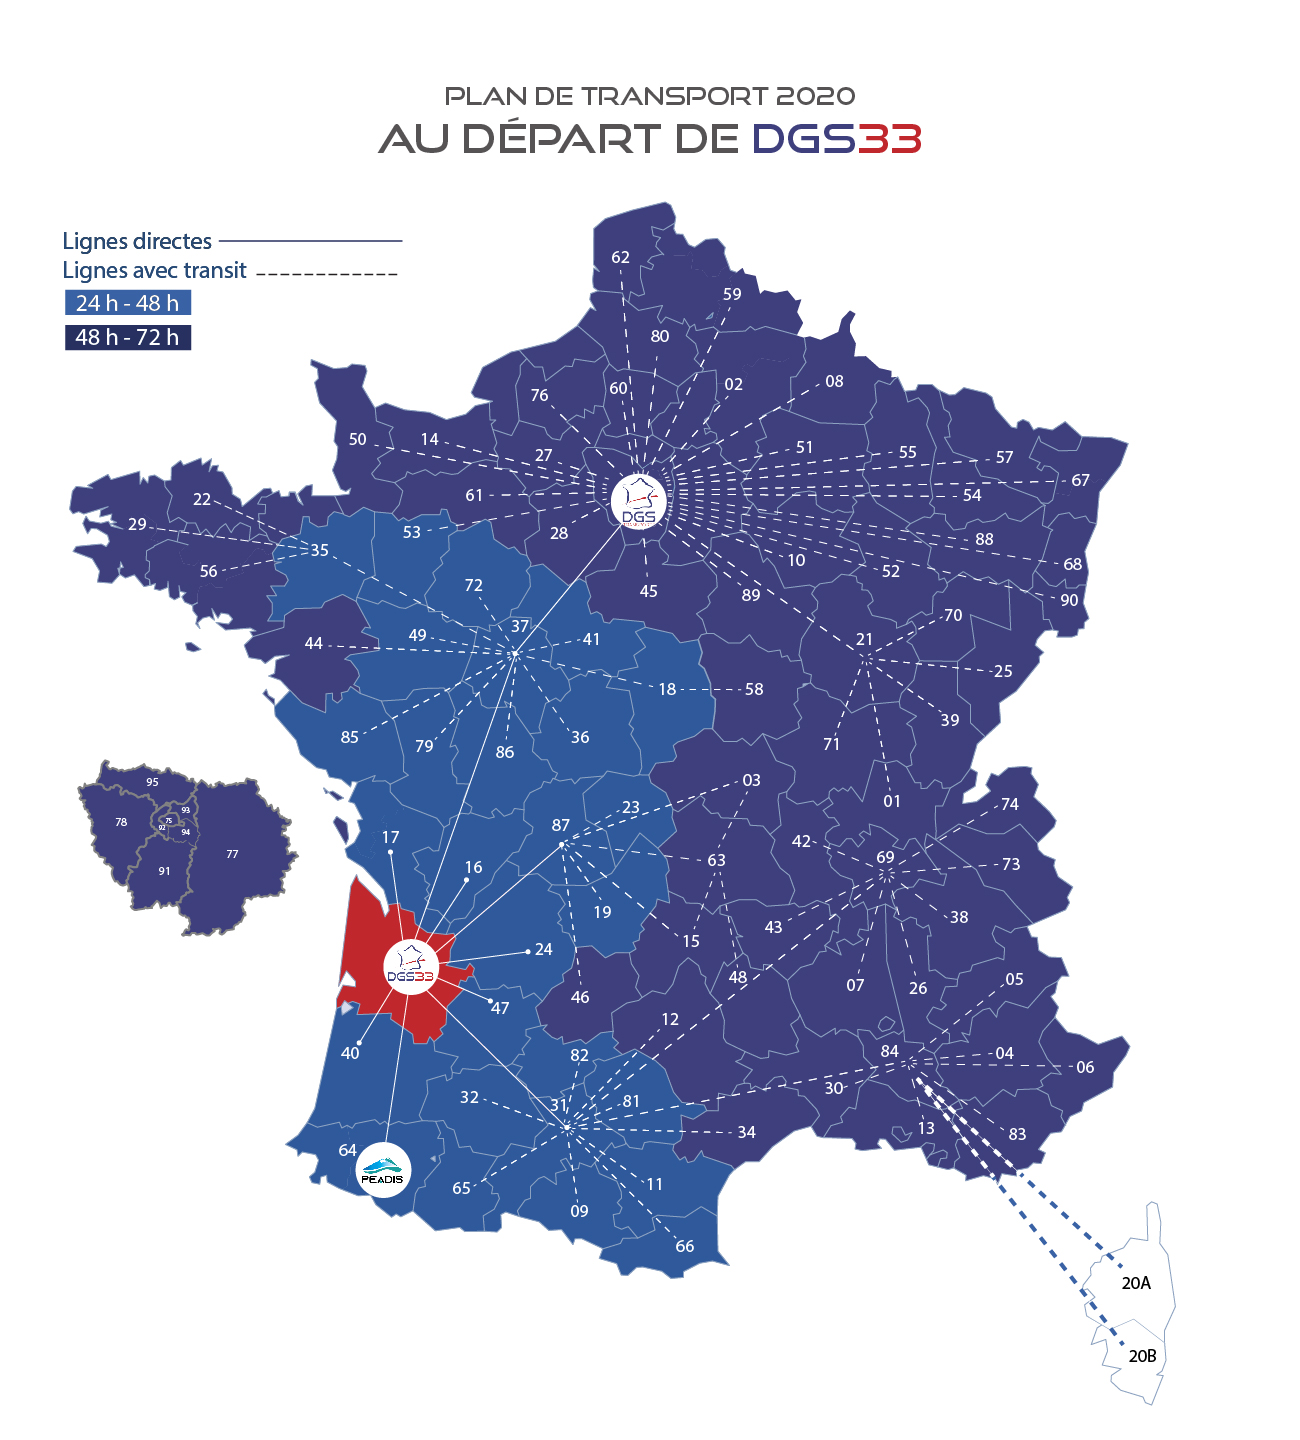 messagerie france sud plan de transport DGS 2020